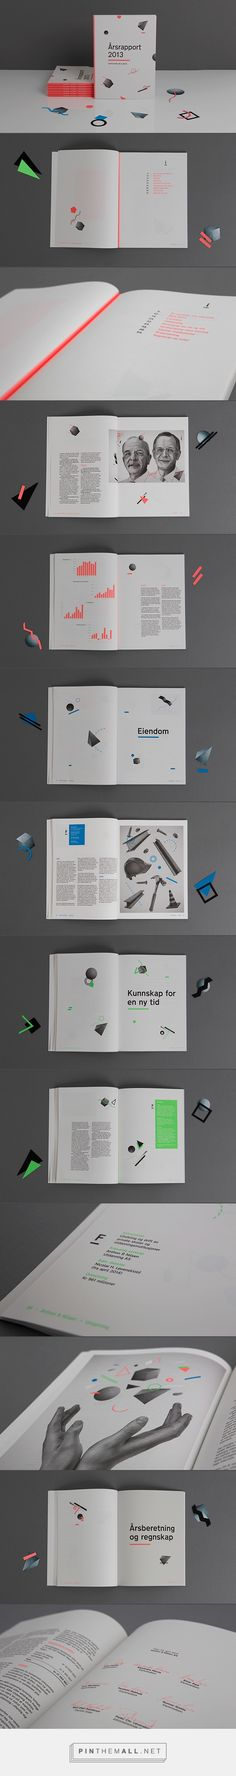 ANTHON B NILSEN on Behance - created via http://pinthemall.net